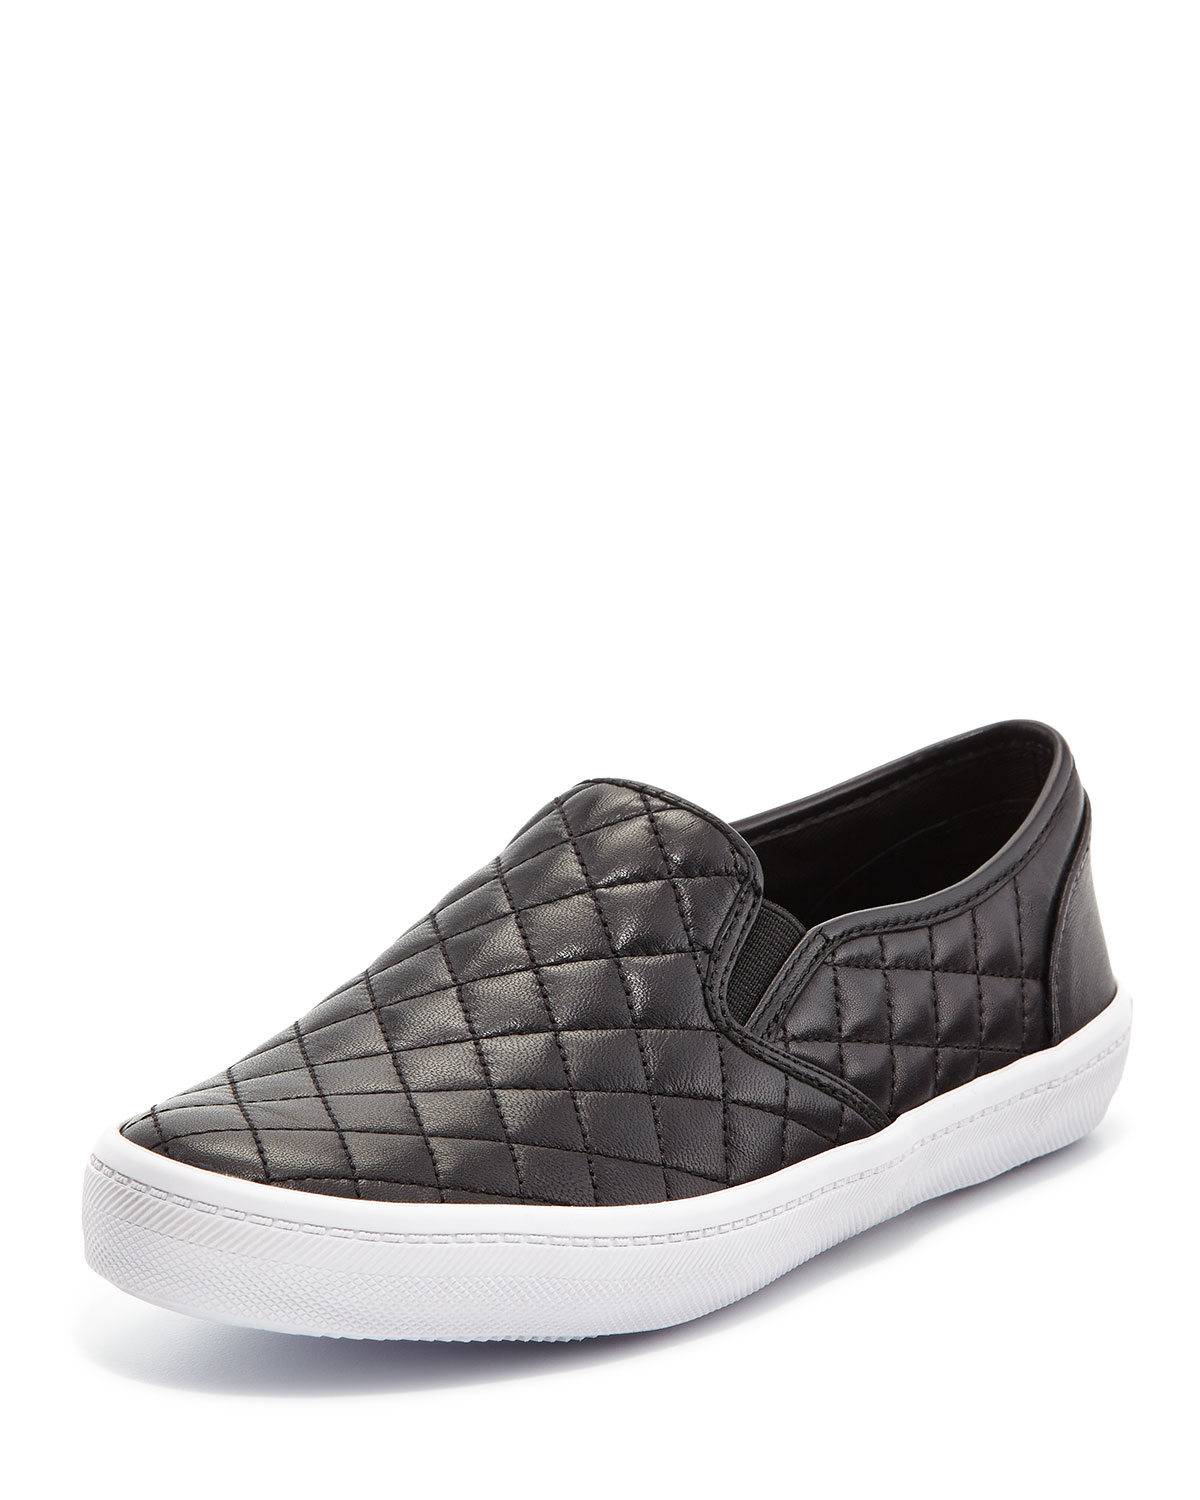 Rebecca Minkoff Sal Leather Quilted Skate Sneaker In Black